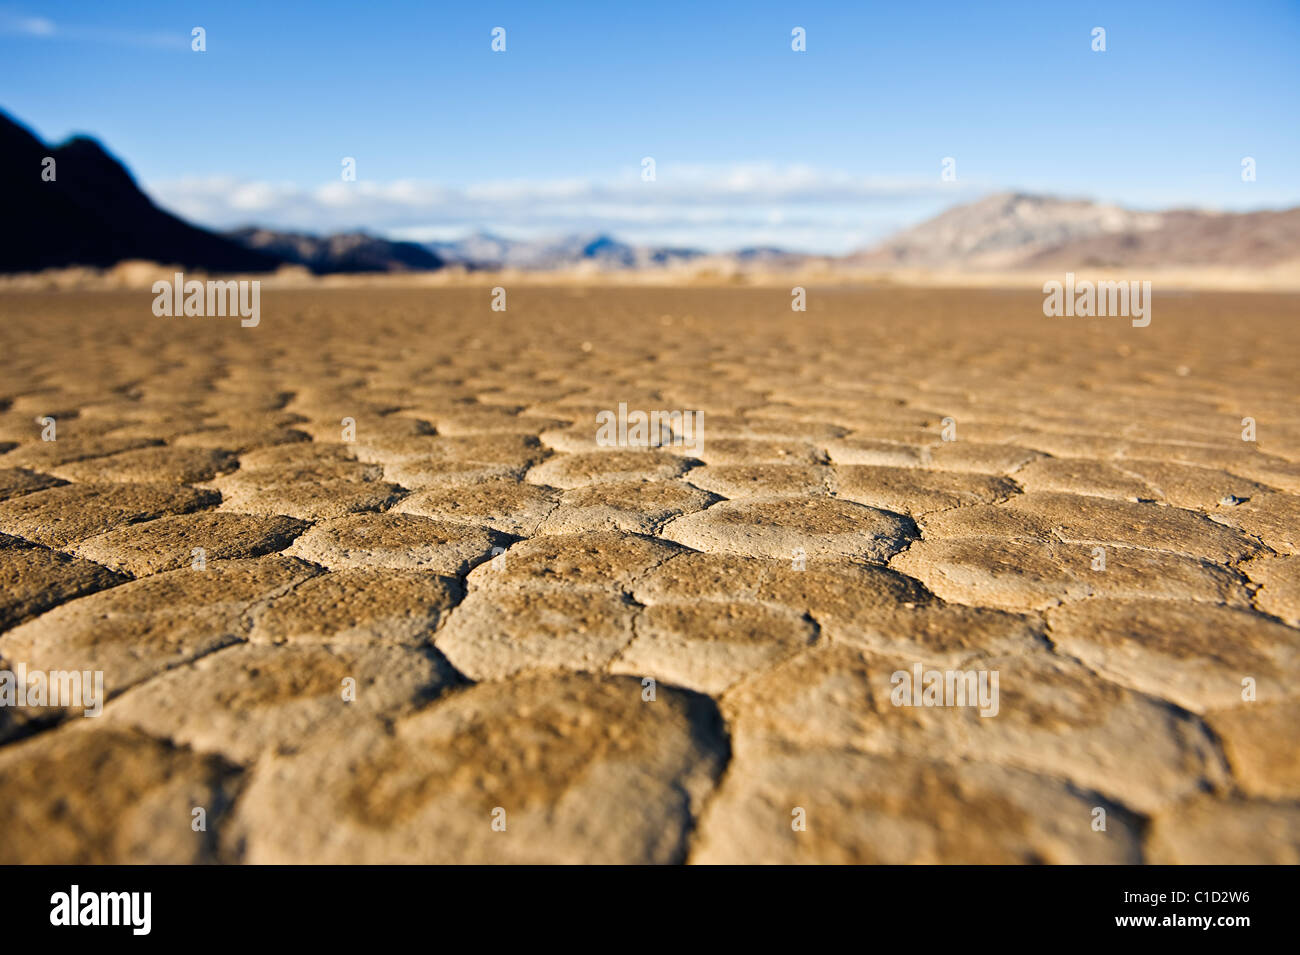 Detail der trockenen Seegrund des Teufels Racetrack Playa, Death Valley Nationalpark, California Stockbild